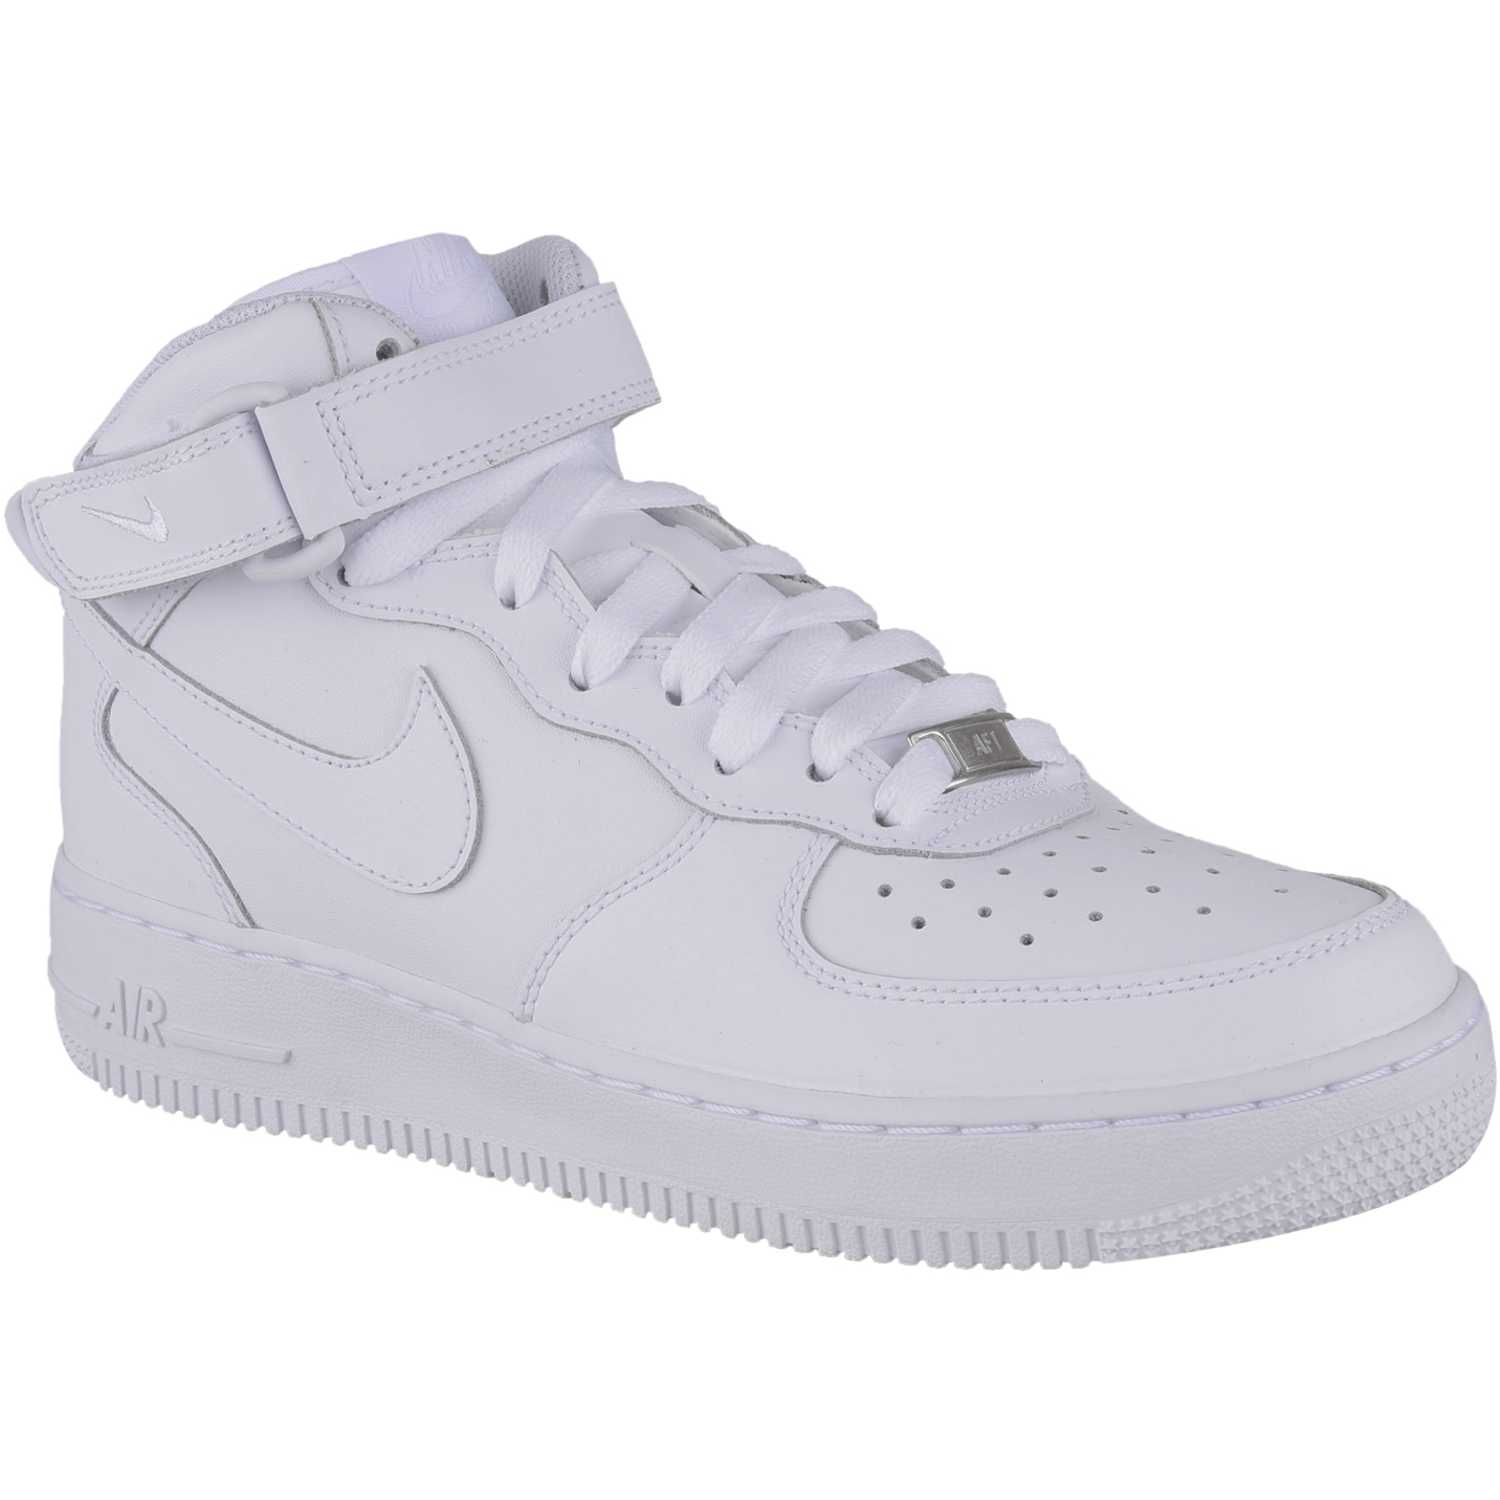 Nike nk air force 1 mid bg Blanco Fitness y Cross-Training